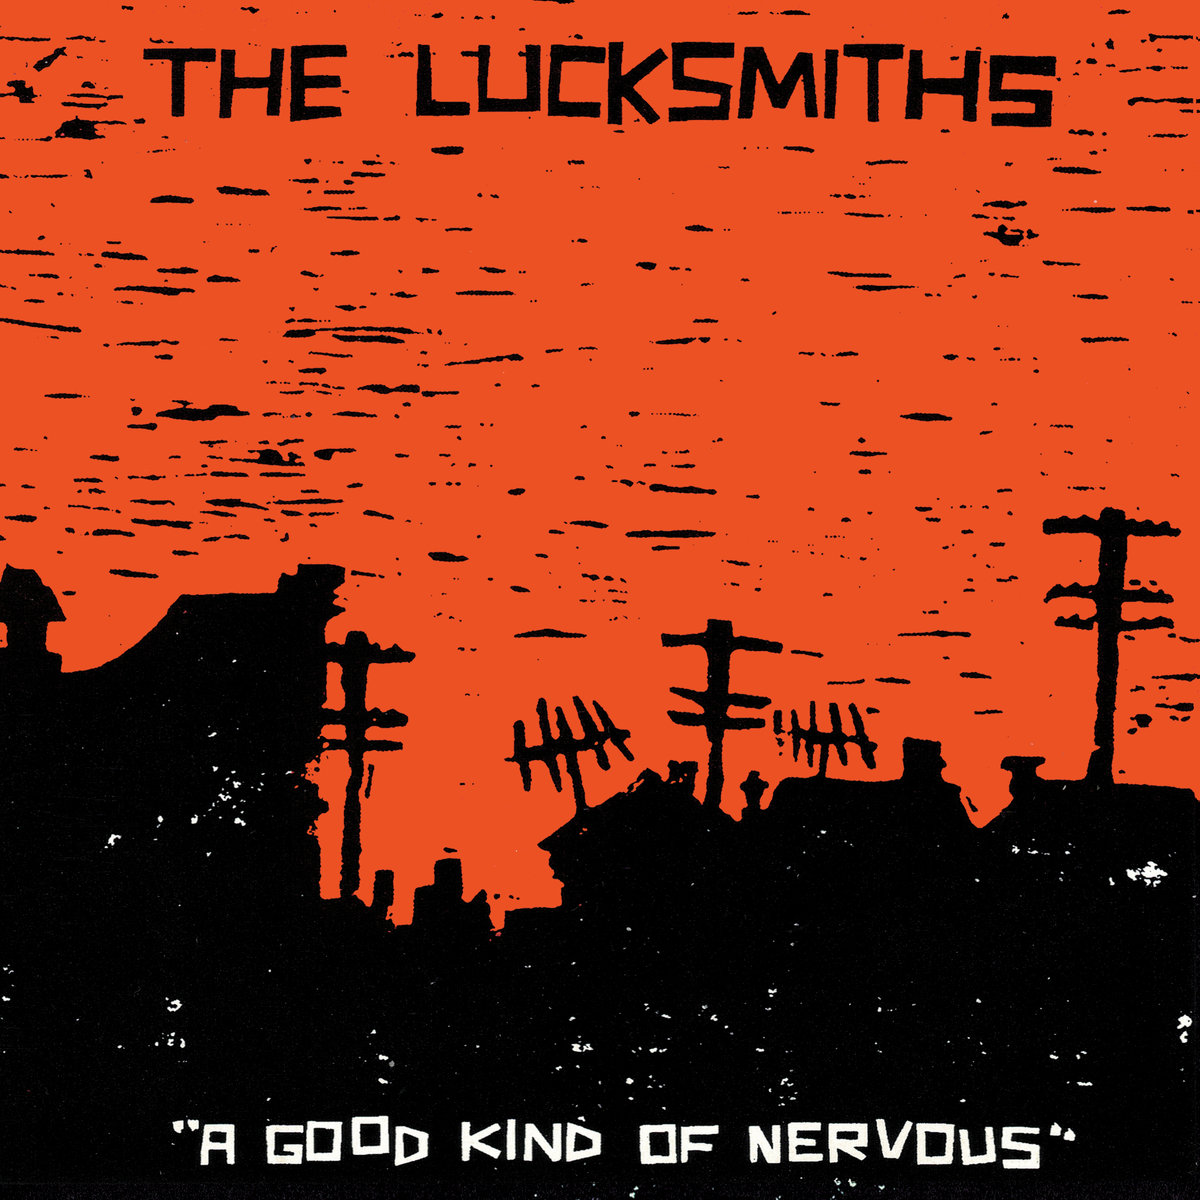 The Lucksmiths – A Good Kind Of Nervous